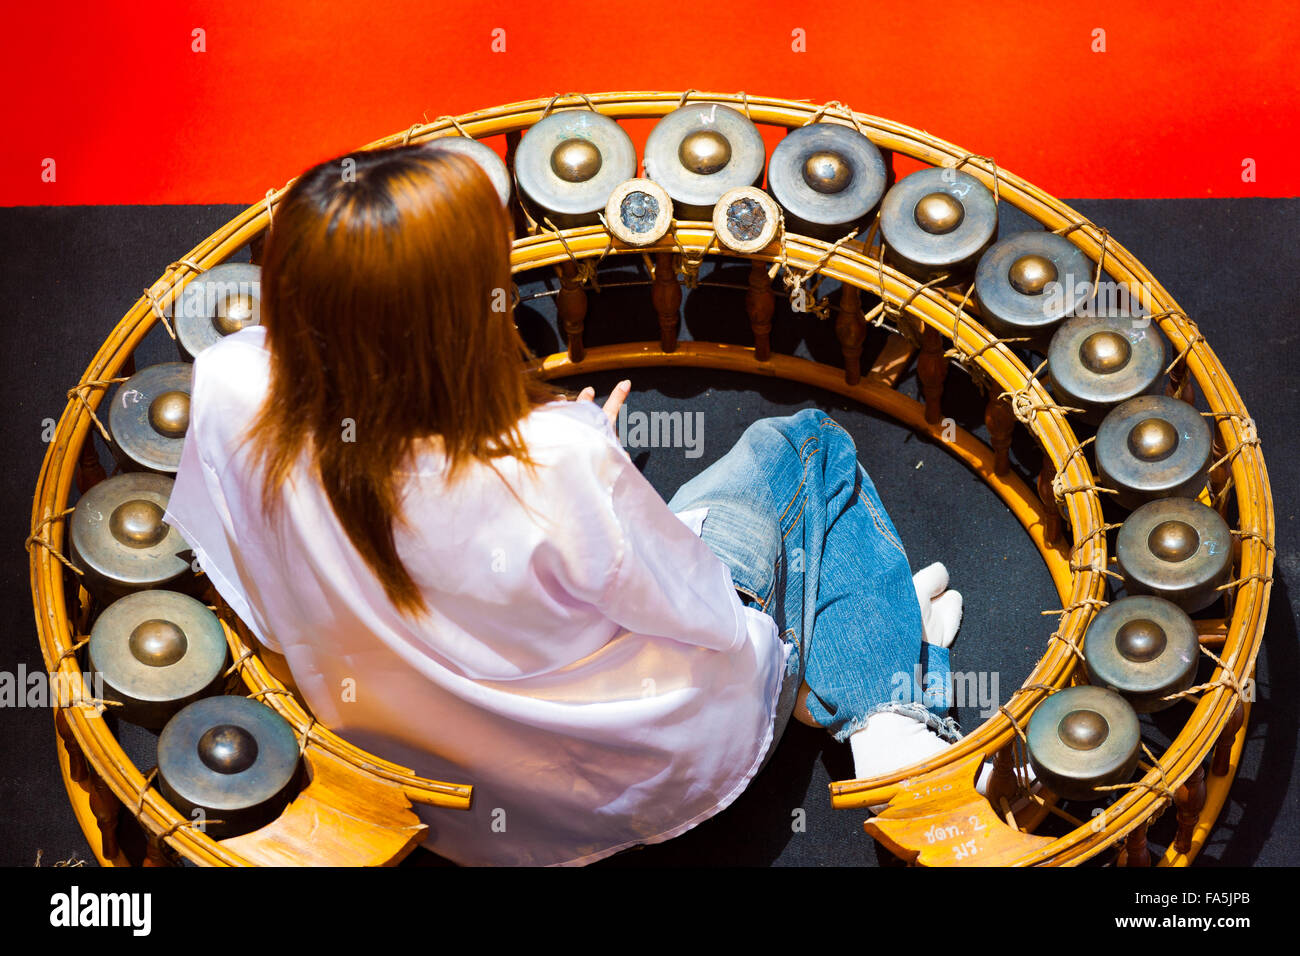 Classical Music Percussion Instrument Musical Stockfotos ...  Khawng